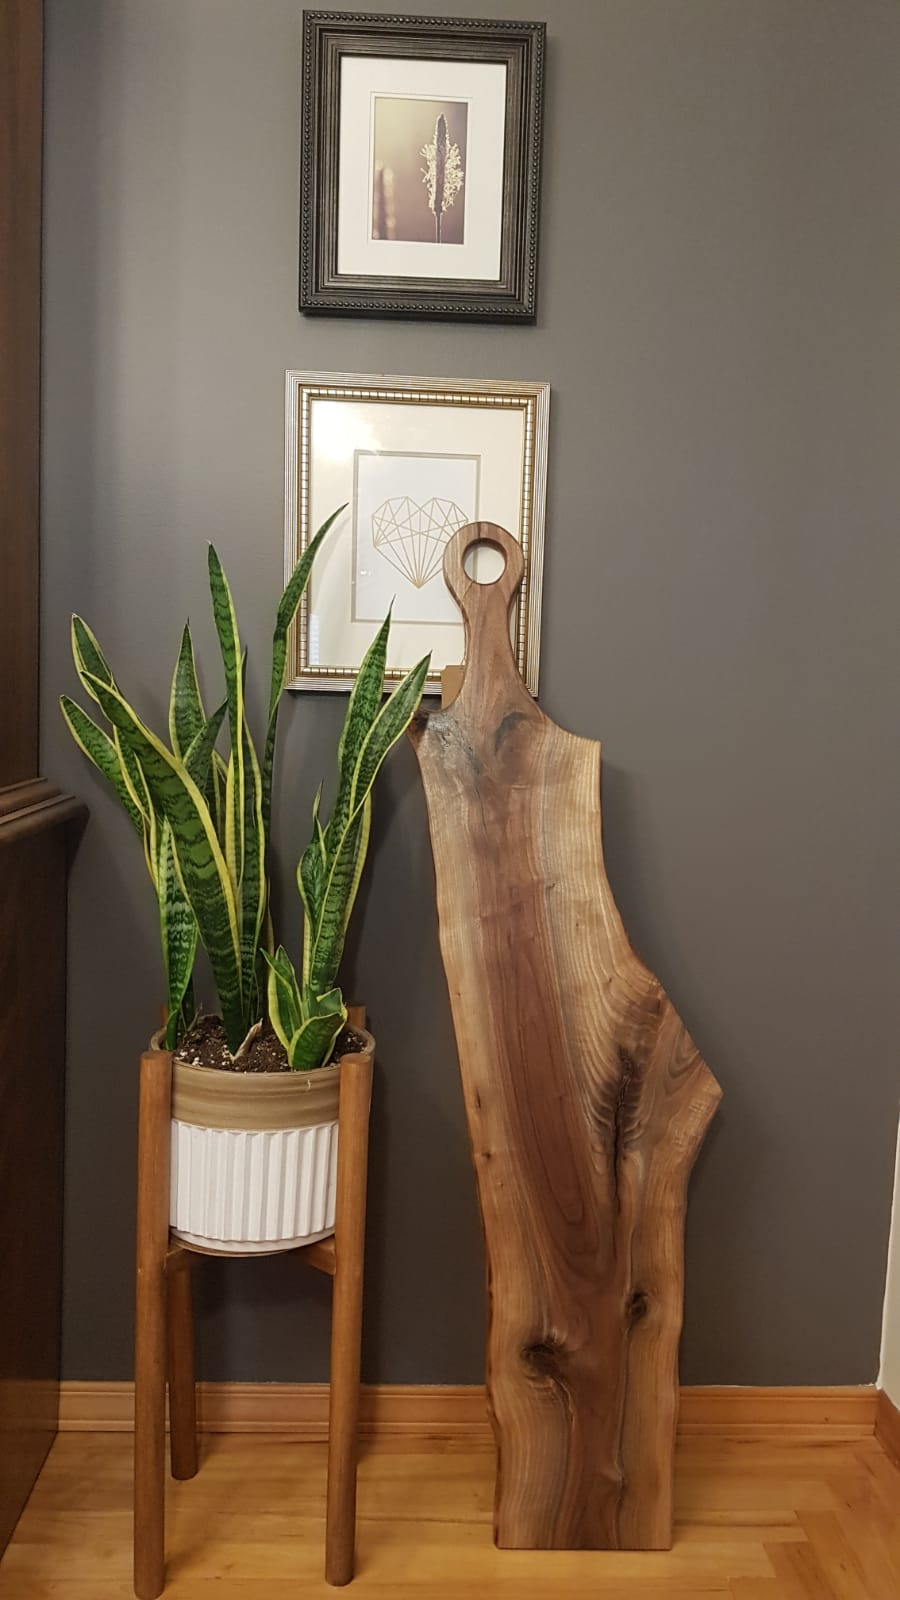 Walnut charcuterie board standing against gray wall with snake plant in wooden standing planter